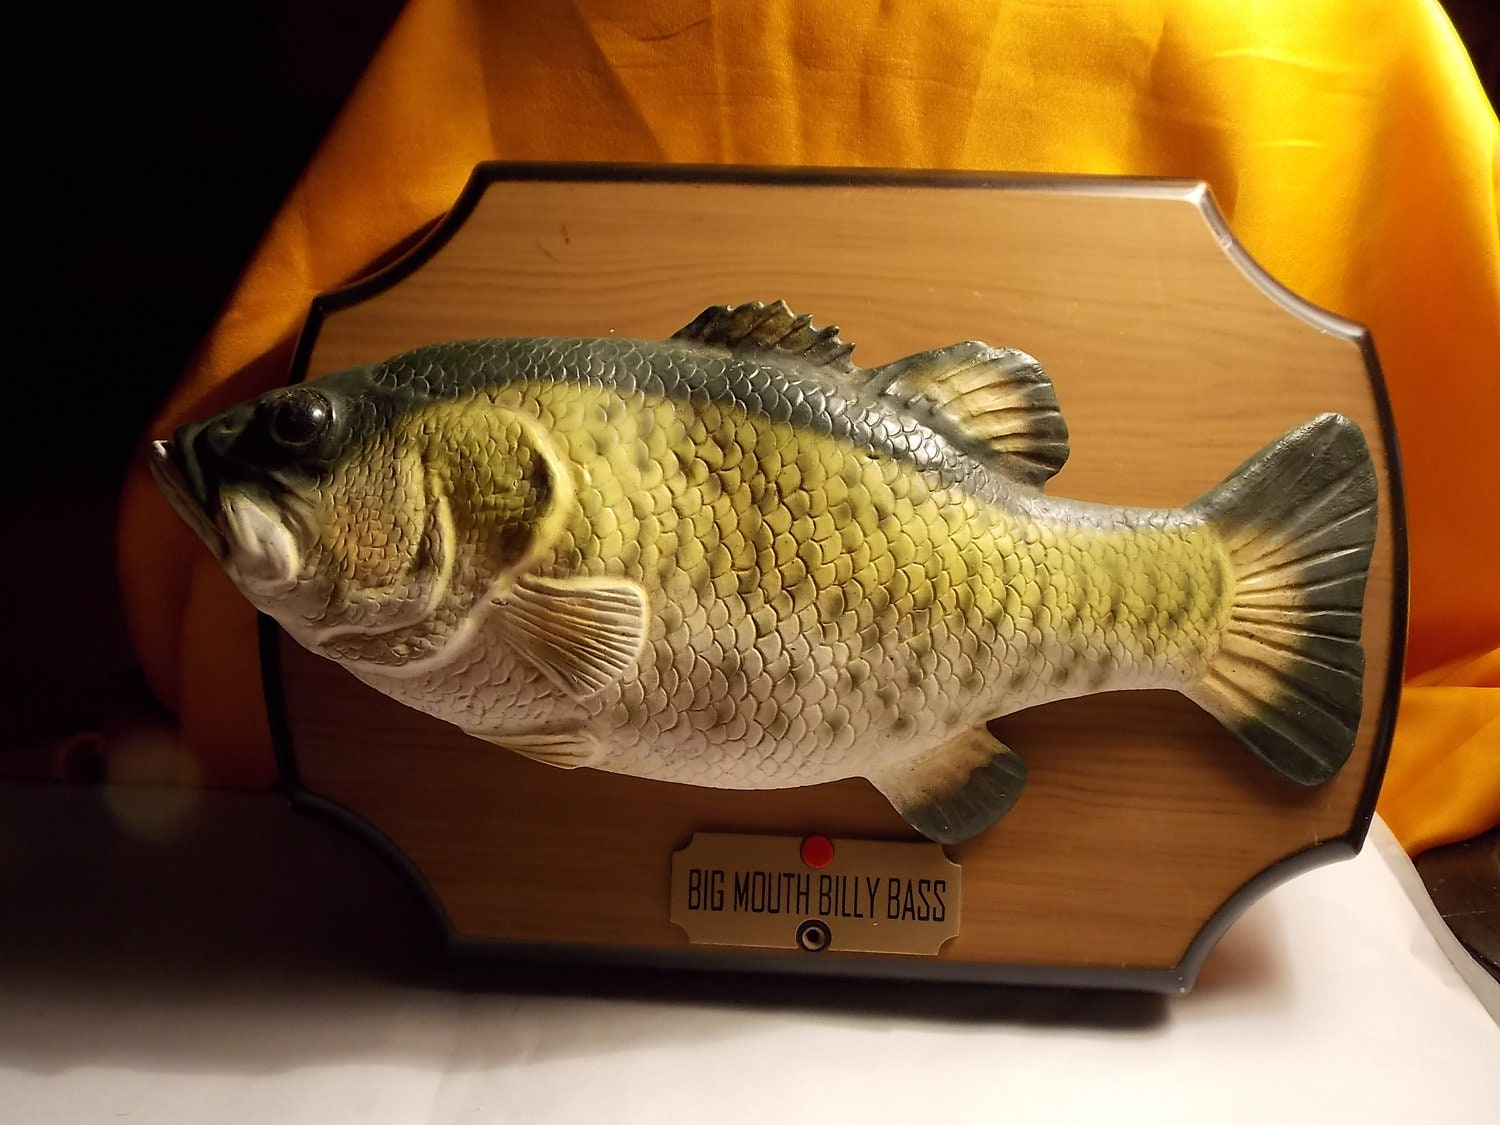 Big mouth billy bass animated singing fish on by for Dont worry be happy fish